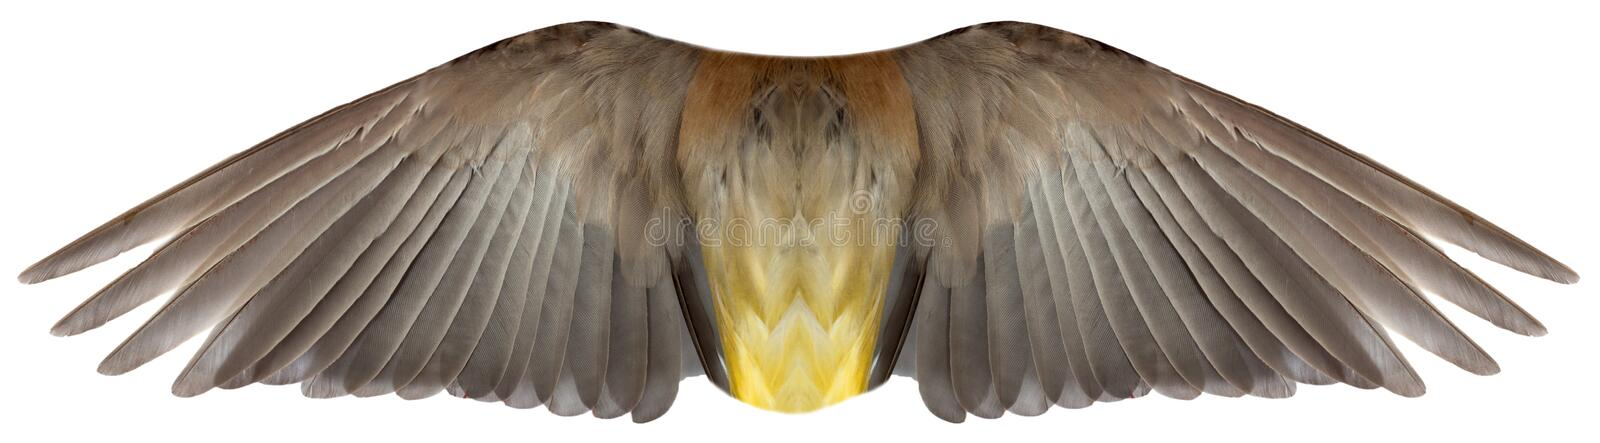 Oiseau ou Angel Feather Wings Isolated photo stock